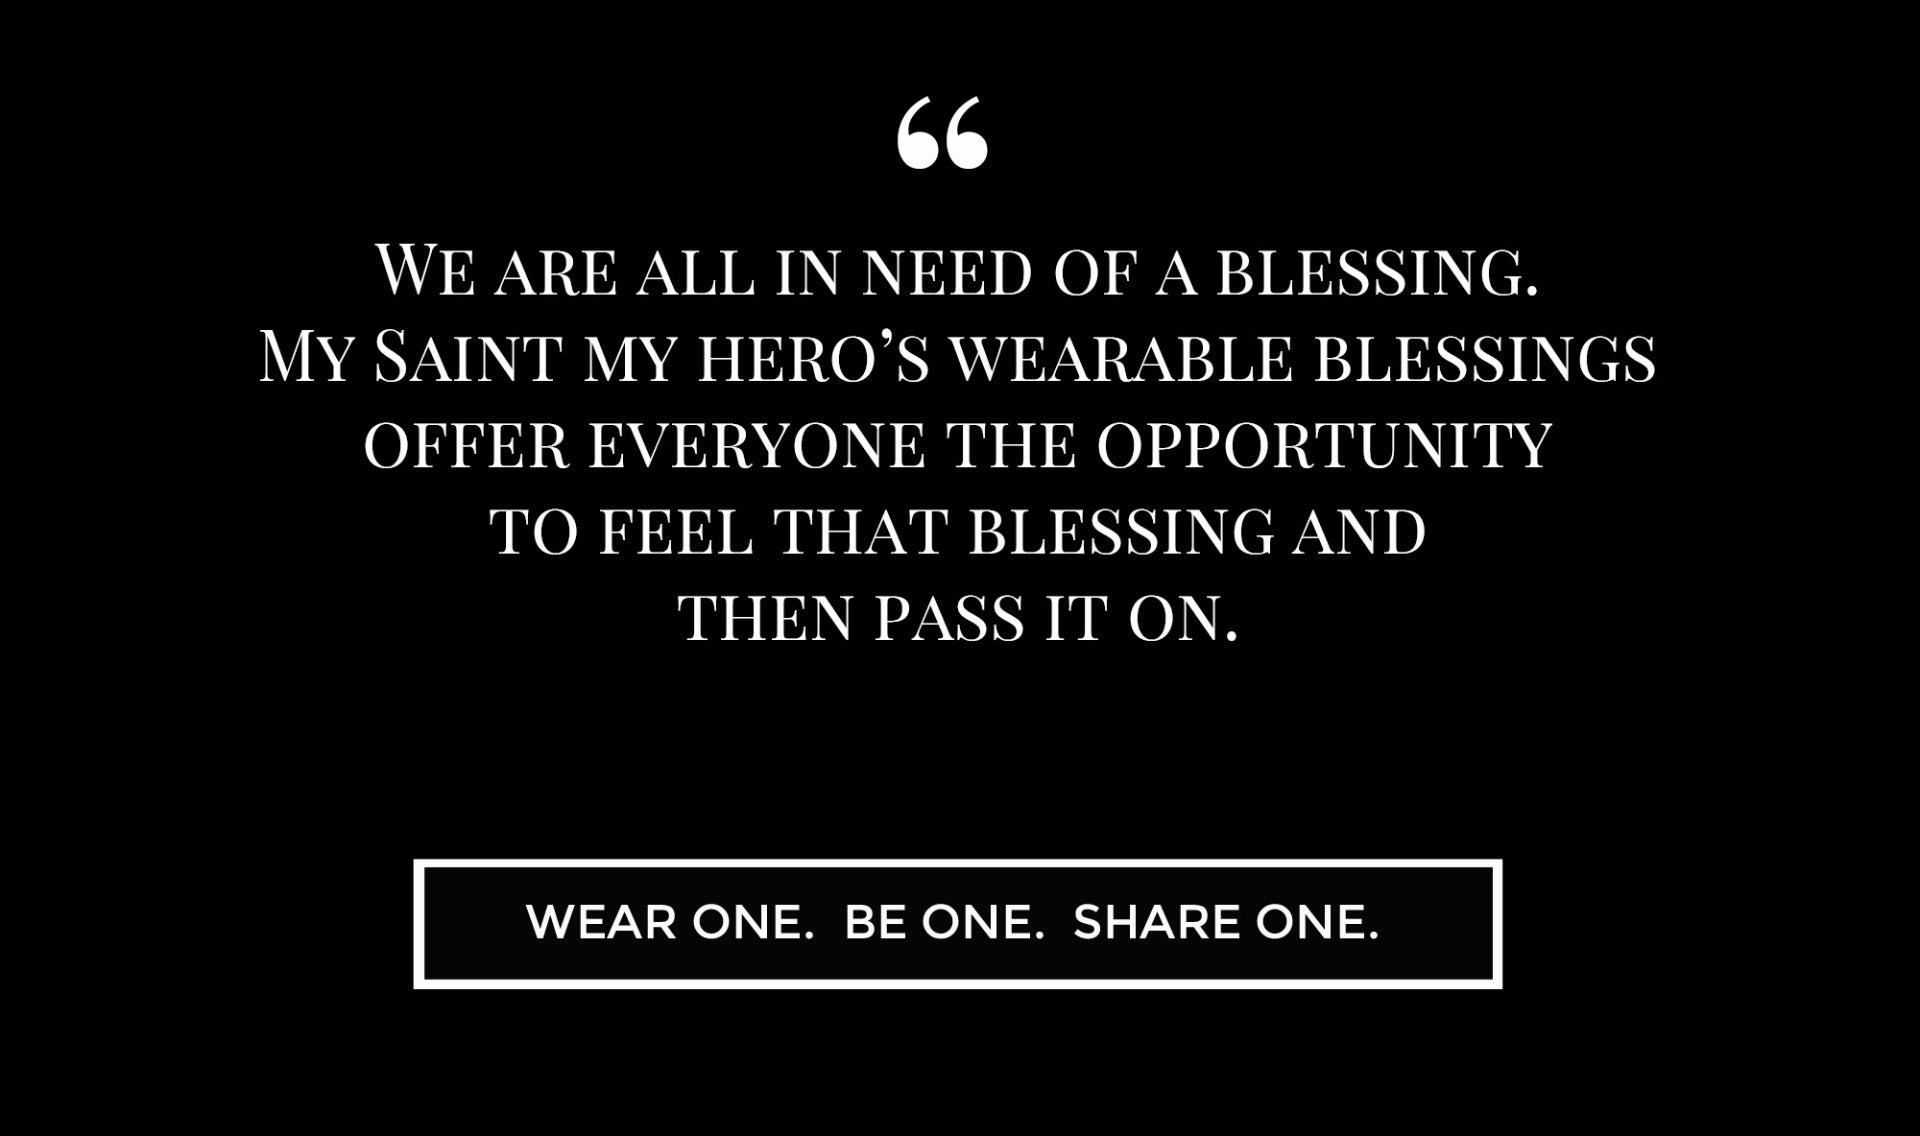 White text on black background - We are all in need of a blessing.